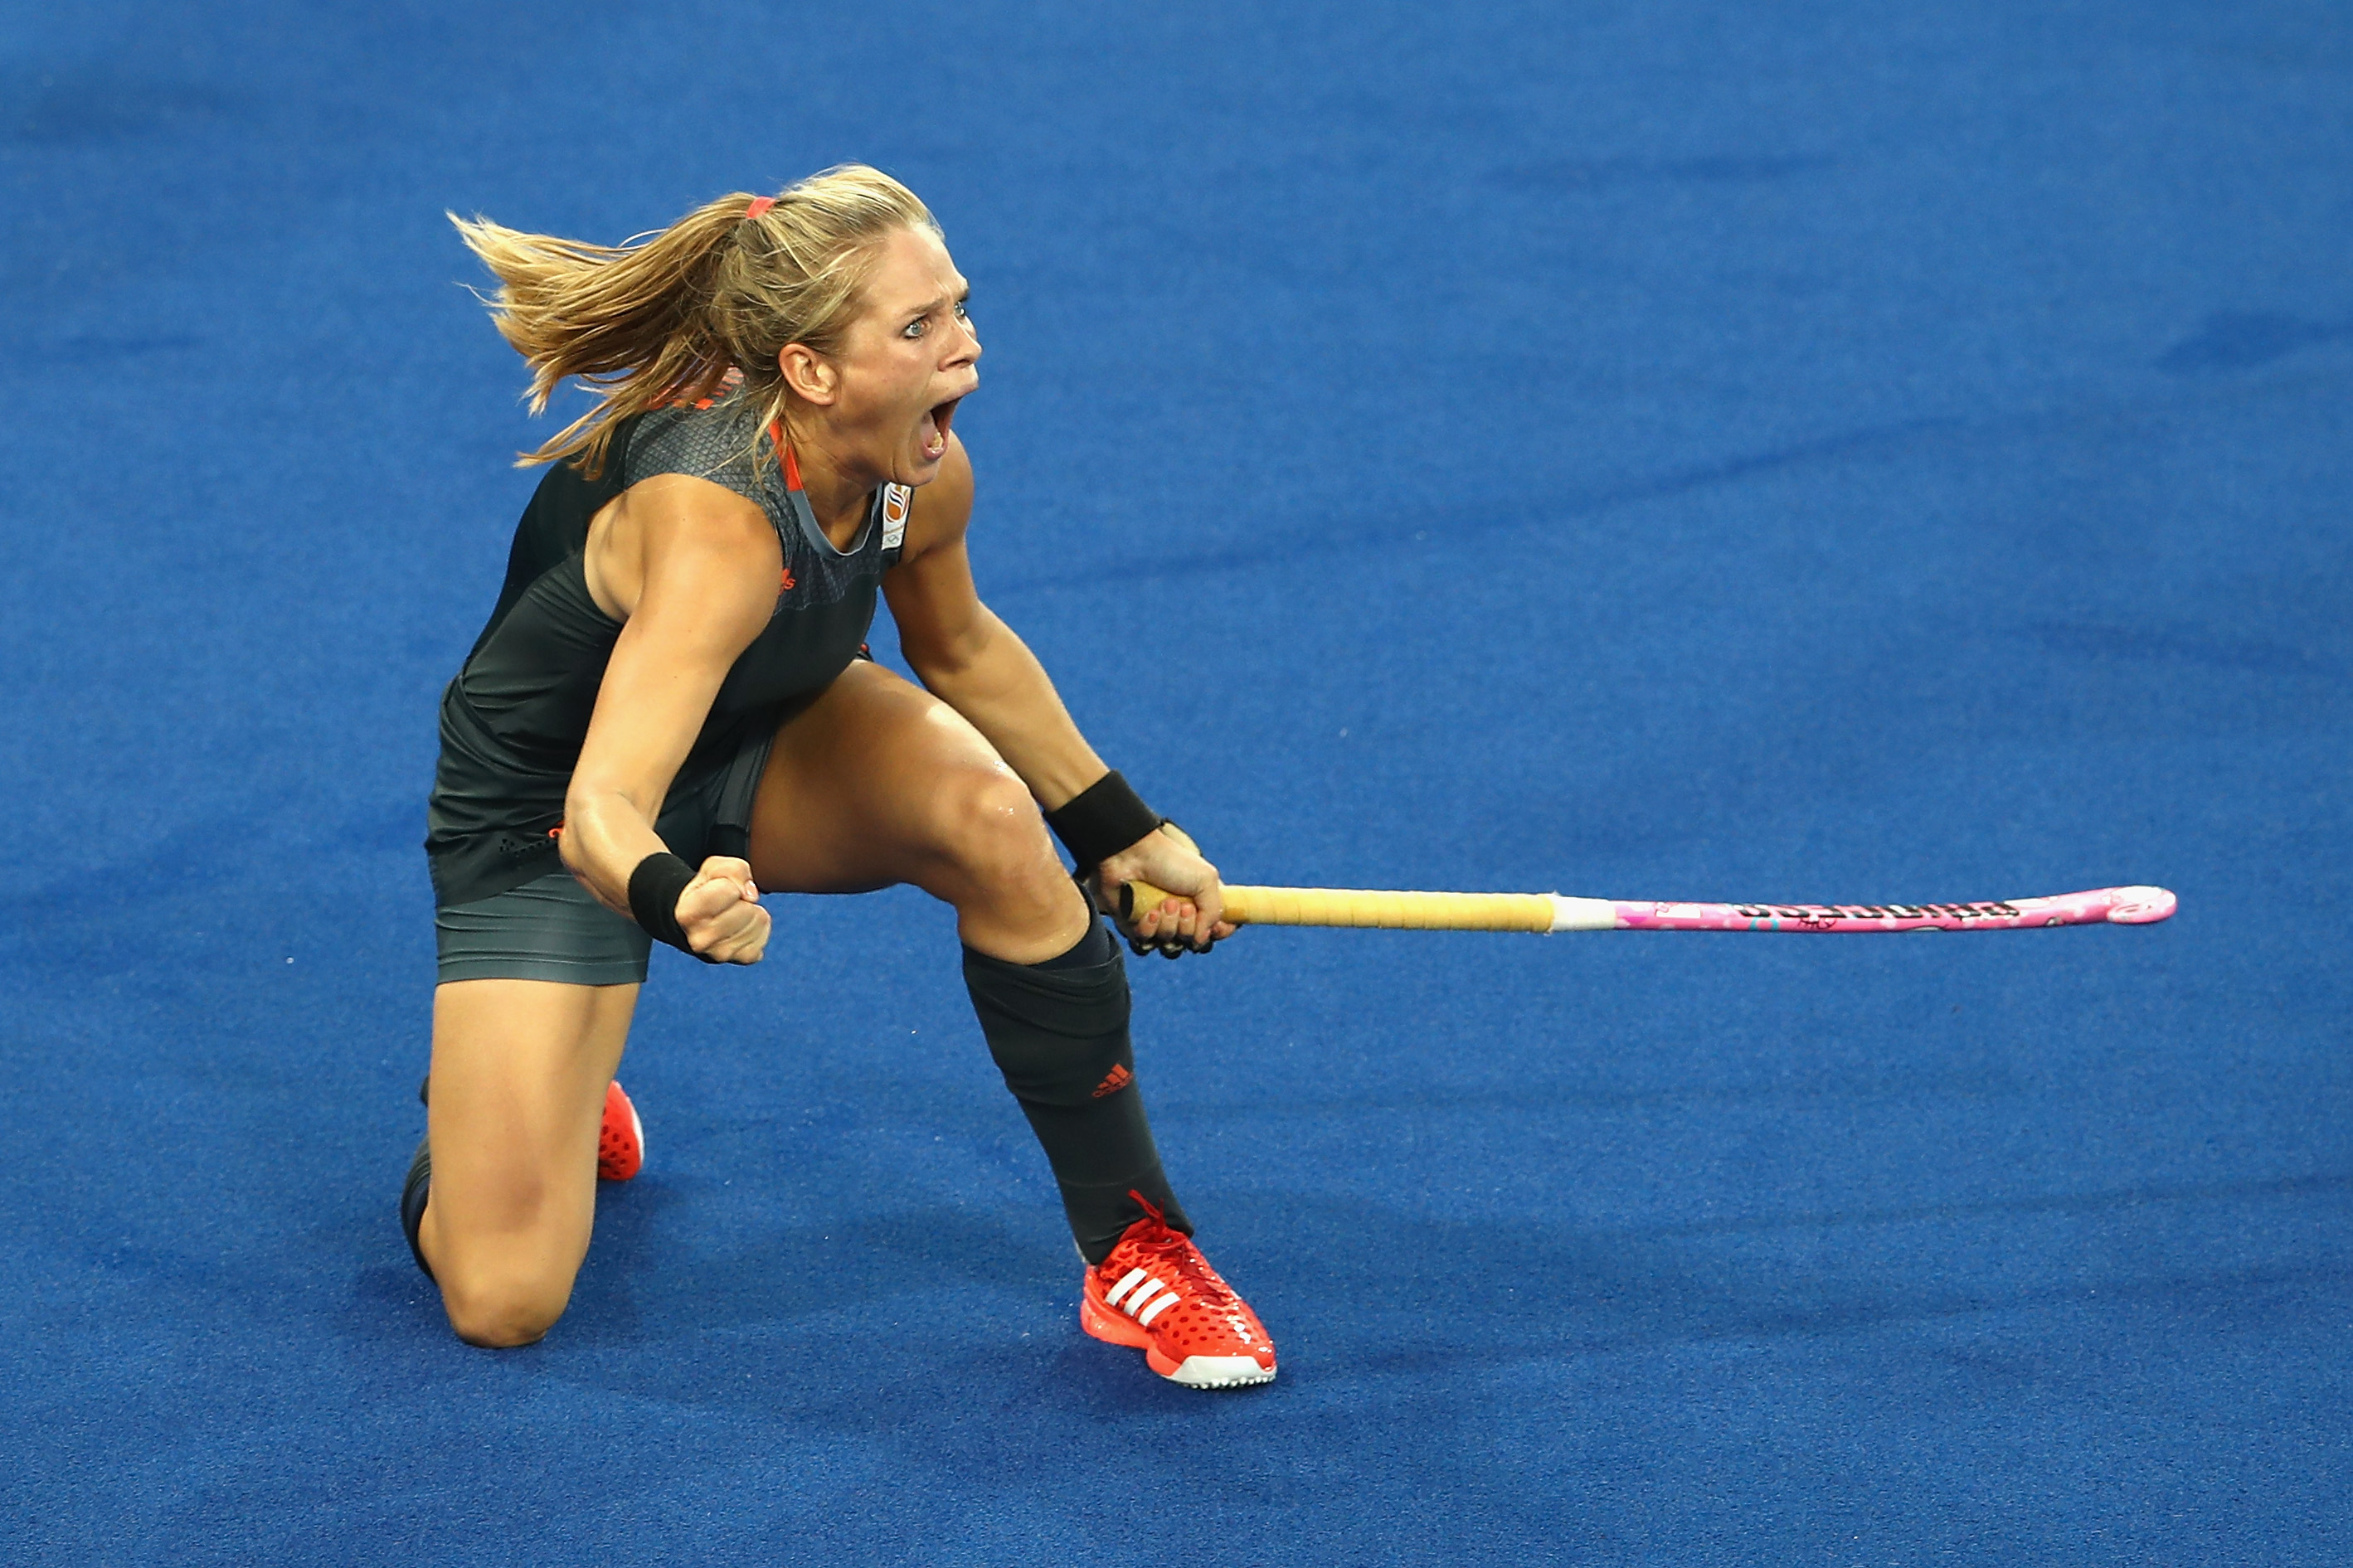 RIO DE JANEIRO, BRAZIL - AUGUST 19: Kitty van Male of Netherlands celebrates scoring a goal during the Women's Gold Medal Match against the Netherlands on Day 14 of the Rio 2016 Olympic Games at the Olympic Hockey Centre on August 19, 2016 in Rio de Janeiro, Brazil. (Photo by Mark Kolbe/Getty Images)